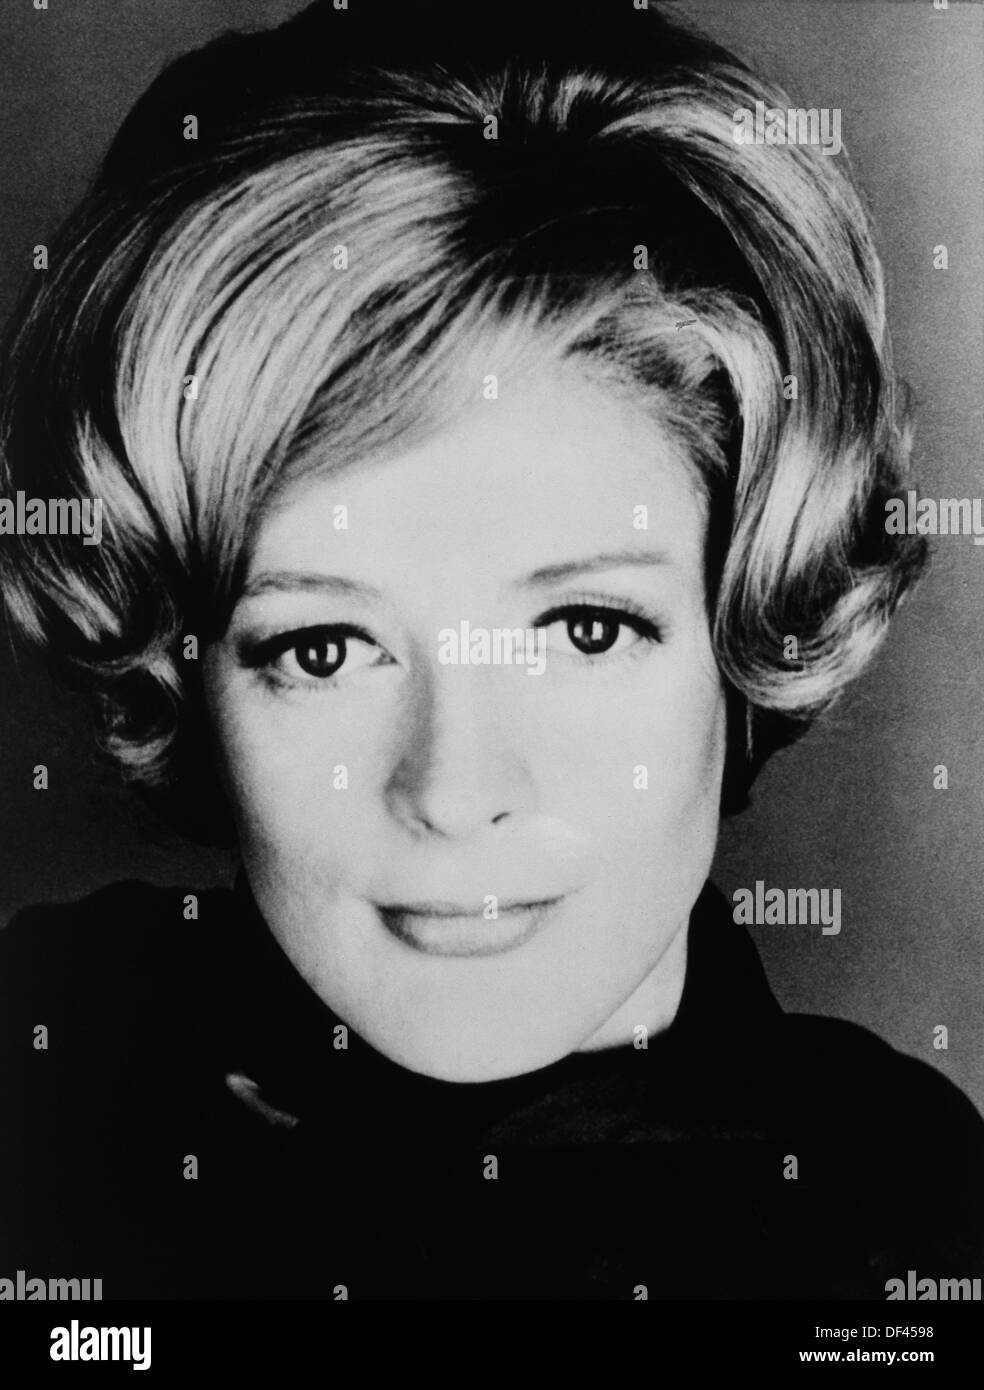 Maggie Smith, Portrait, on-set of the Film, 'The Prime of Miss Jean Brodie', 20th Century Fox, 1969 - Stock Image